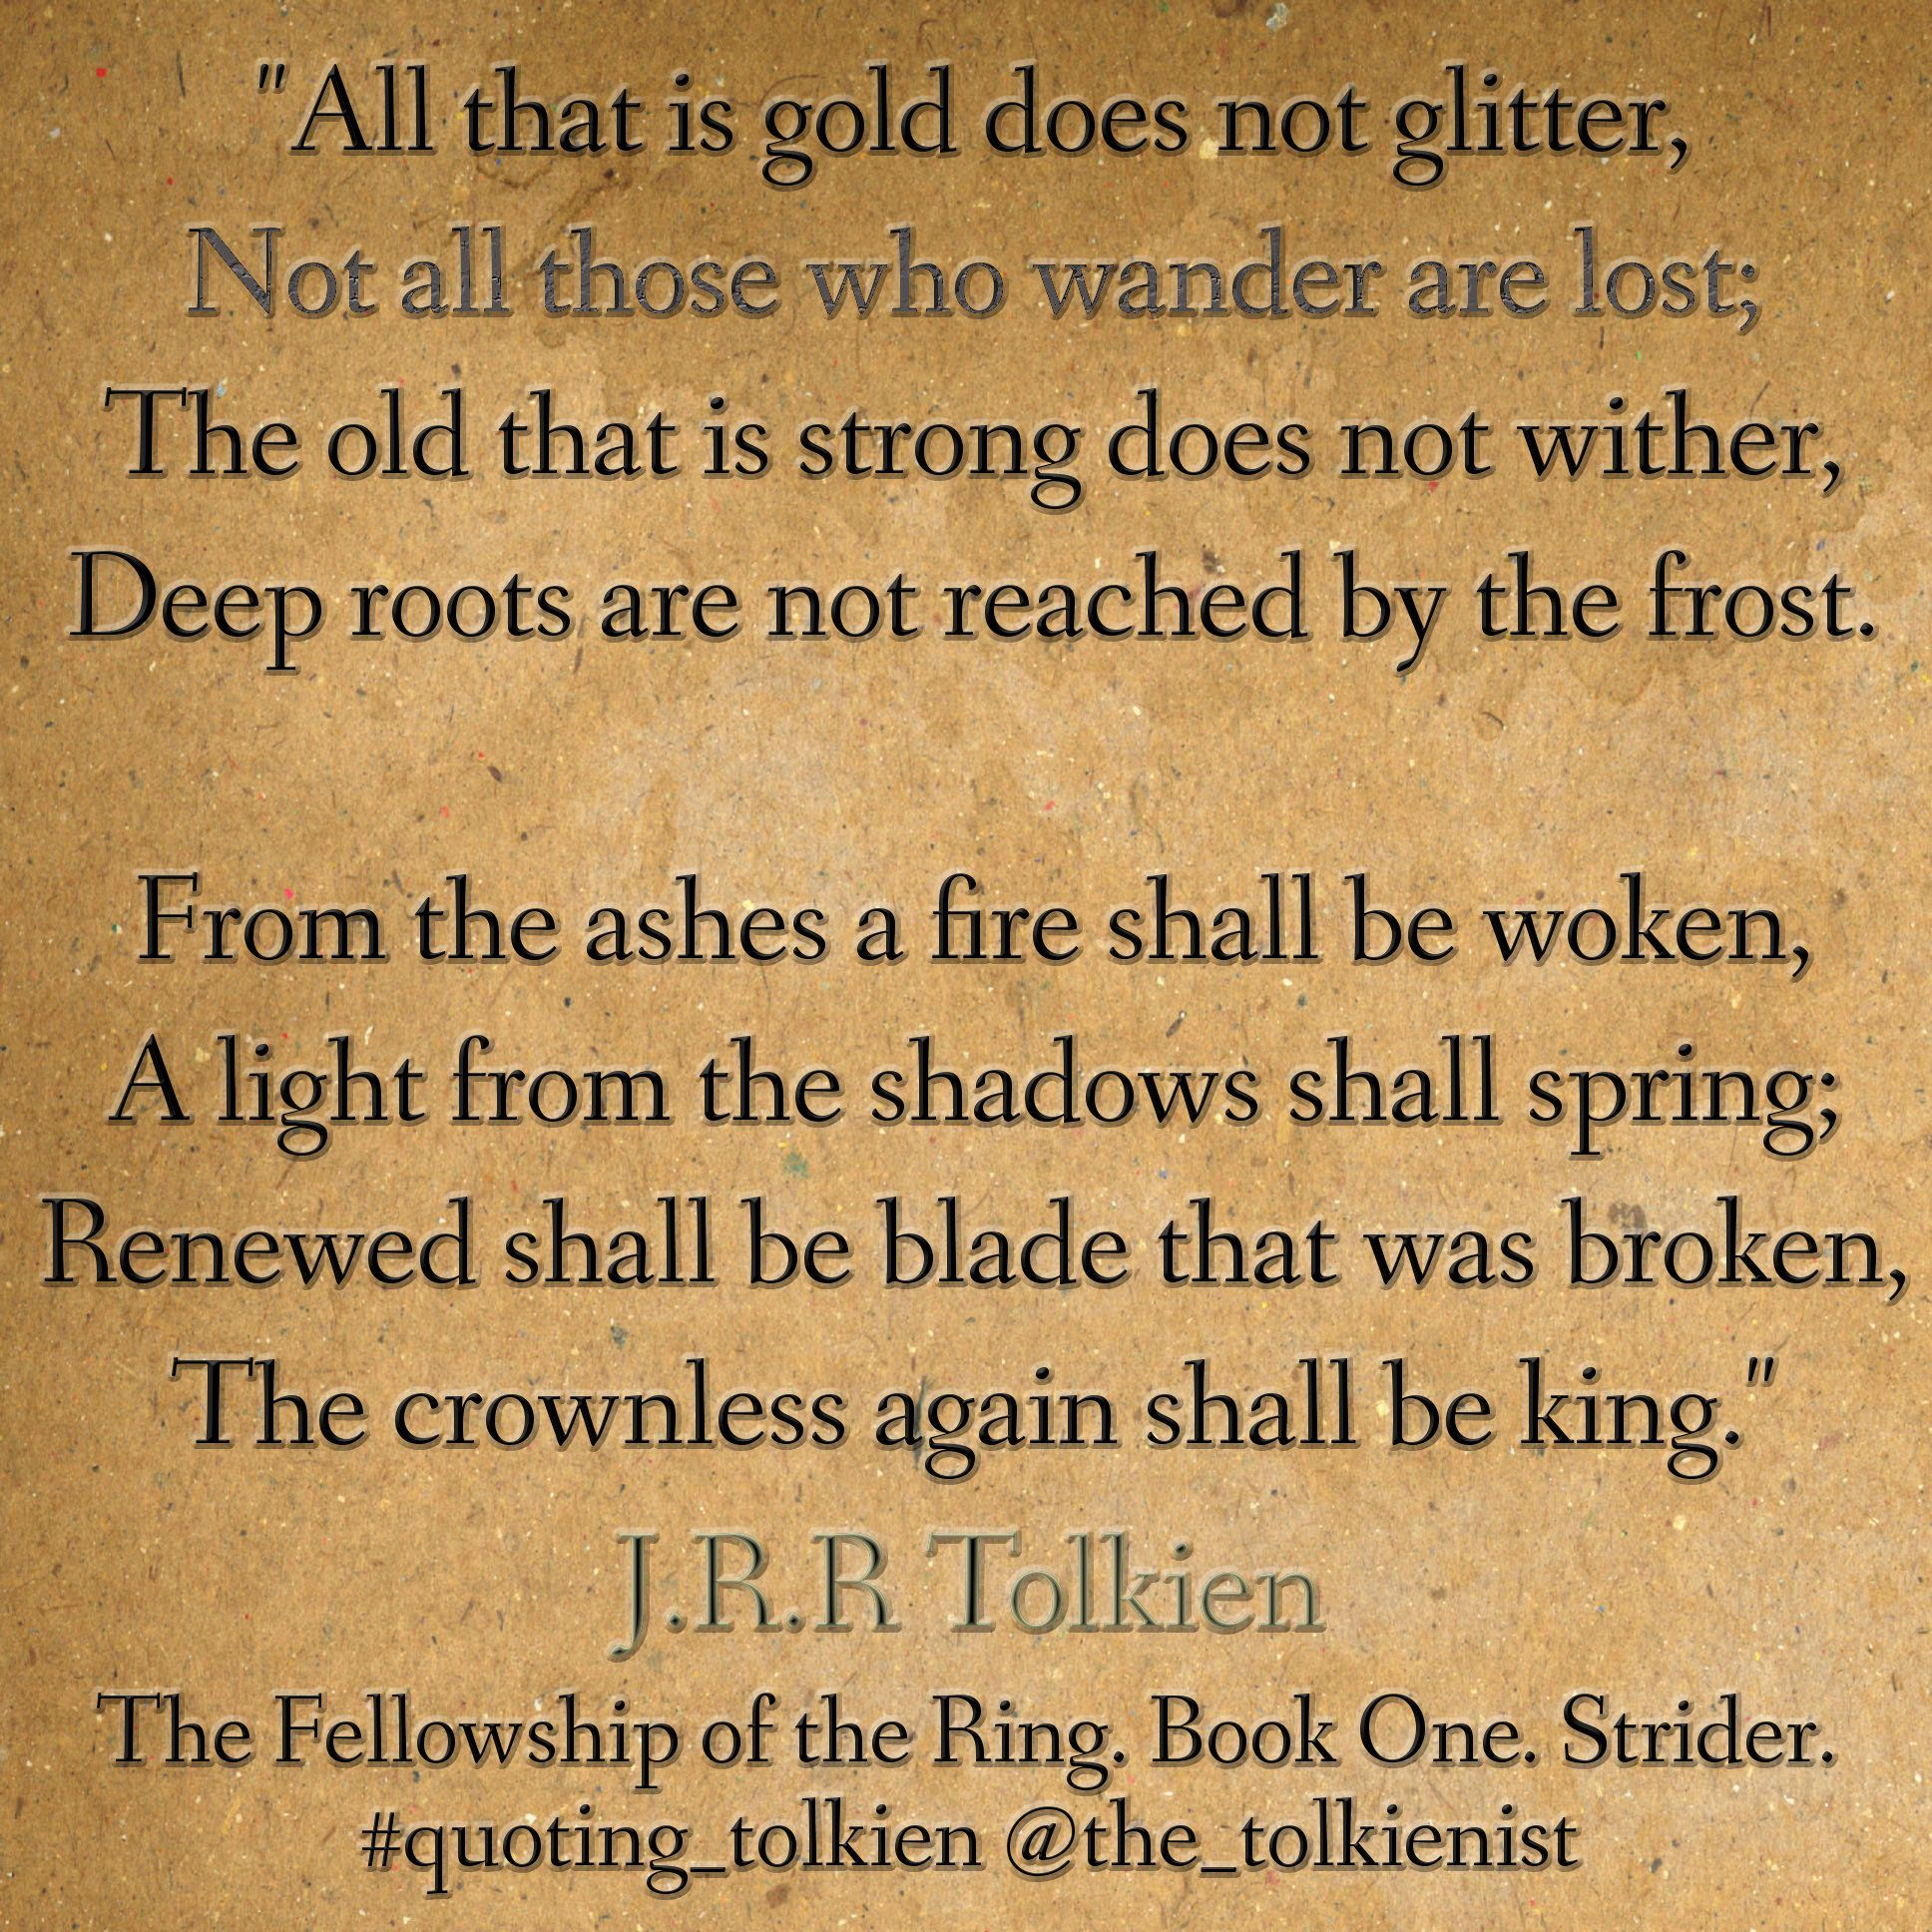 Not All Those Who Wander Are Lost That I Gold Doe Glitter The Right Way Quote Tolkien Quotes Essay On